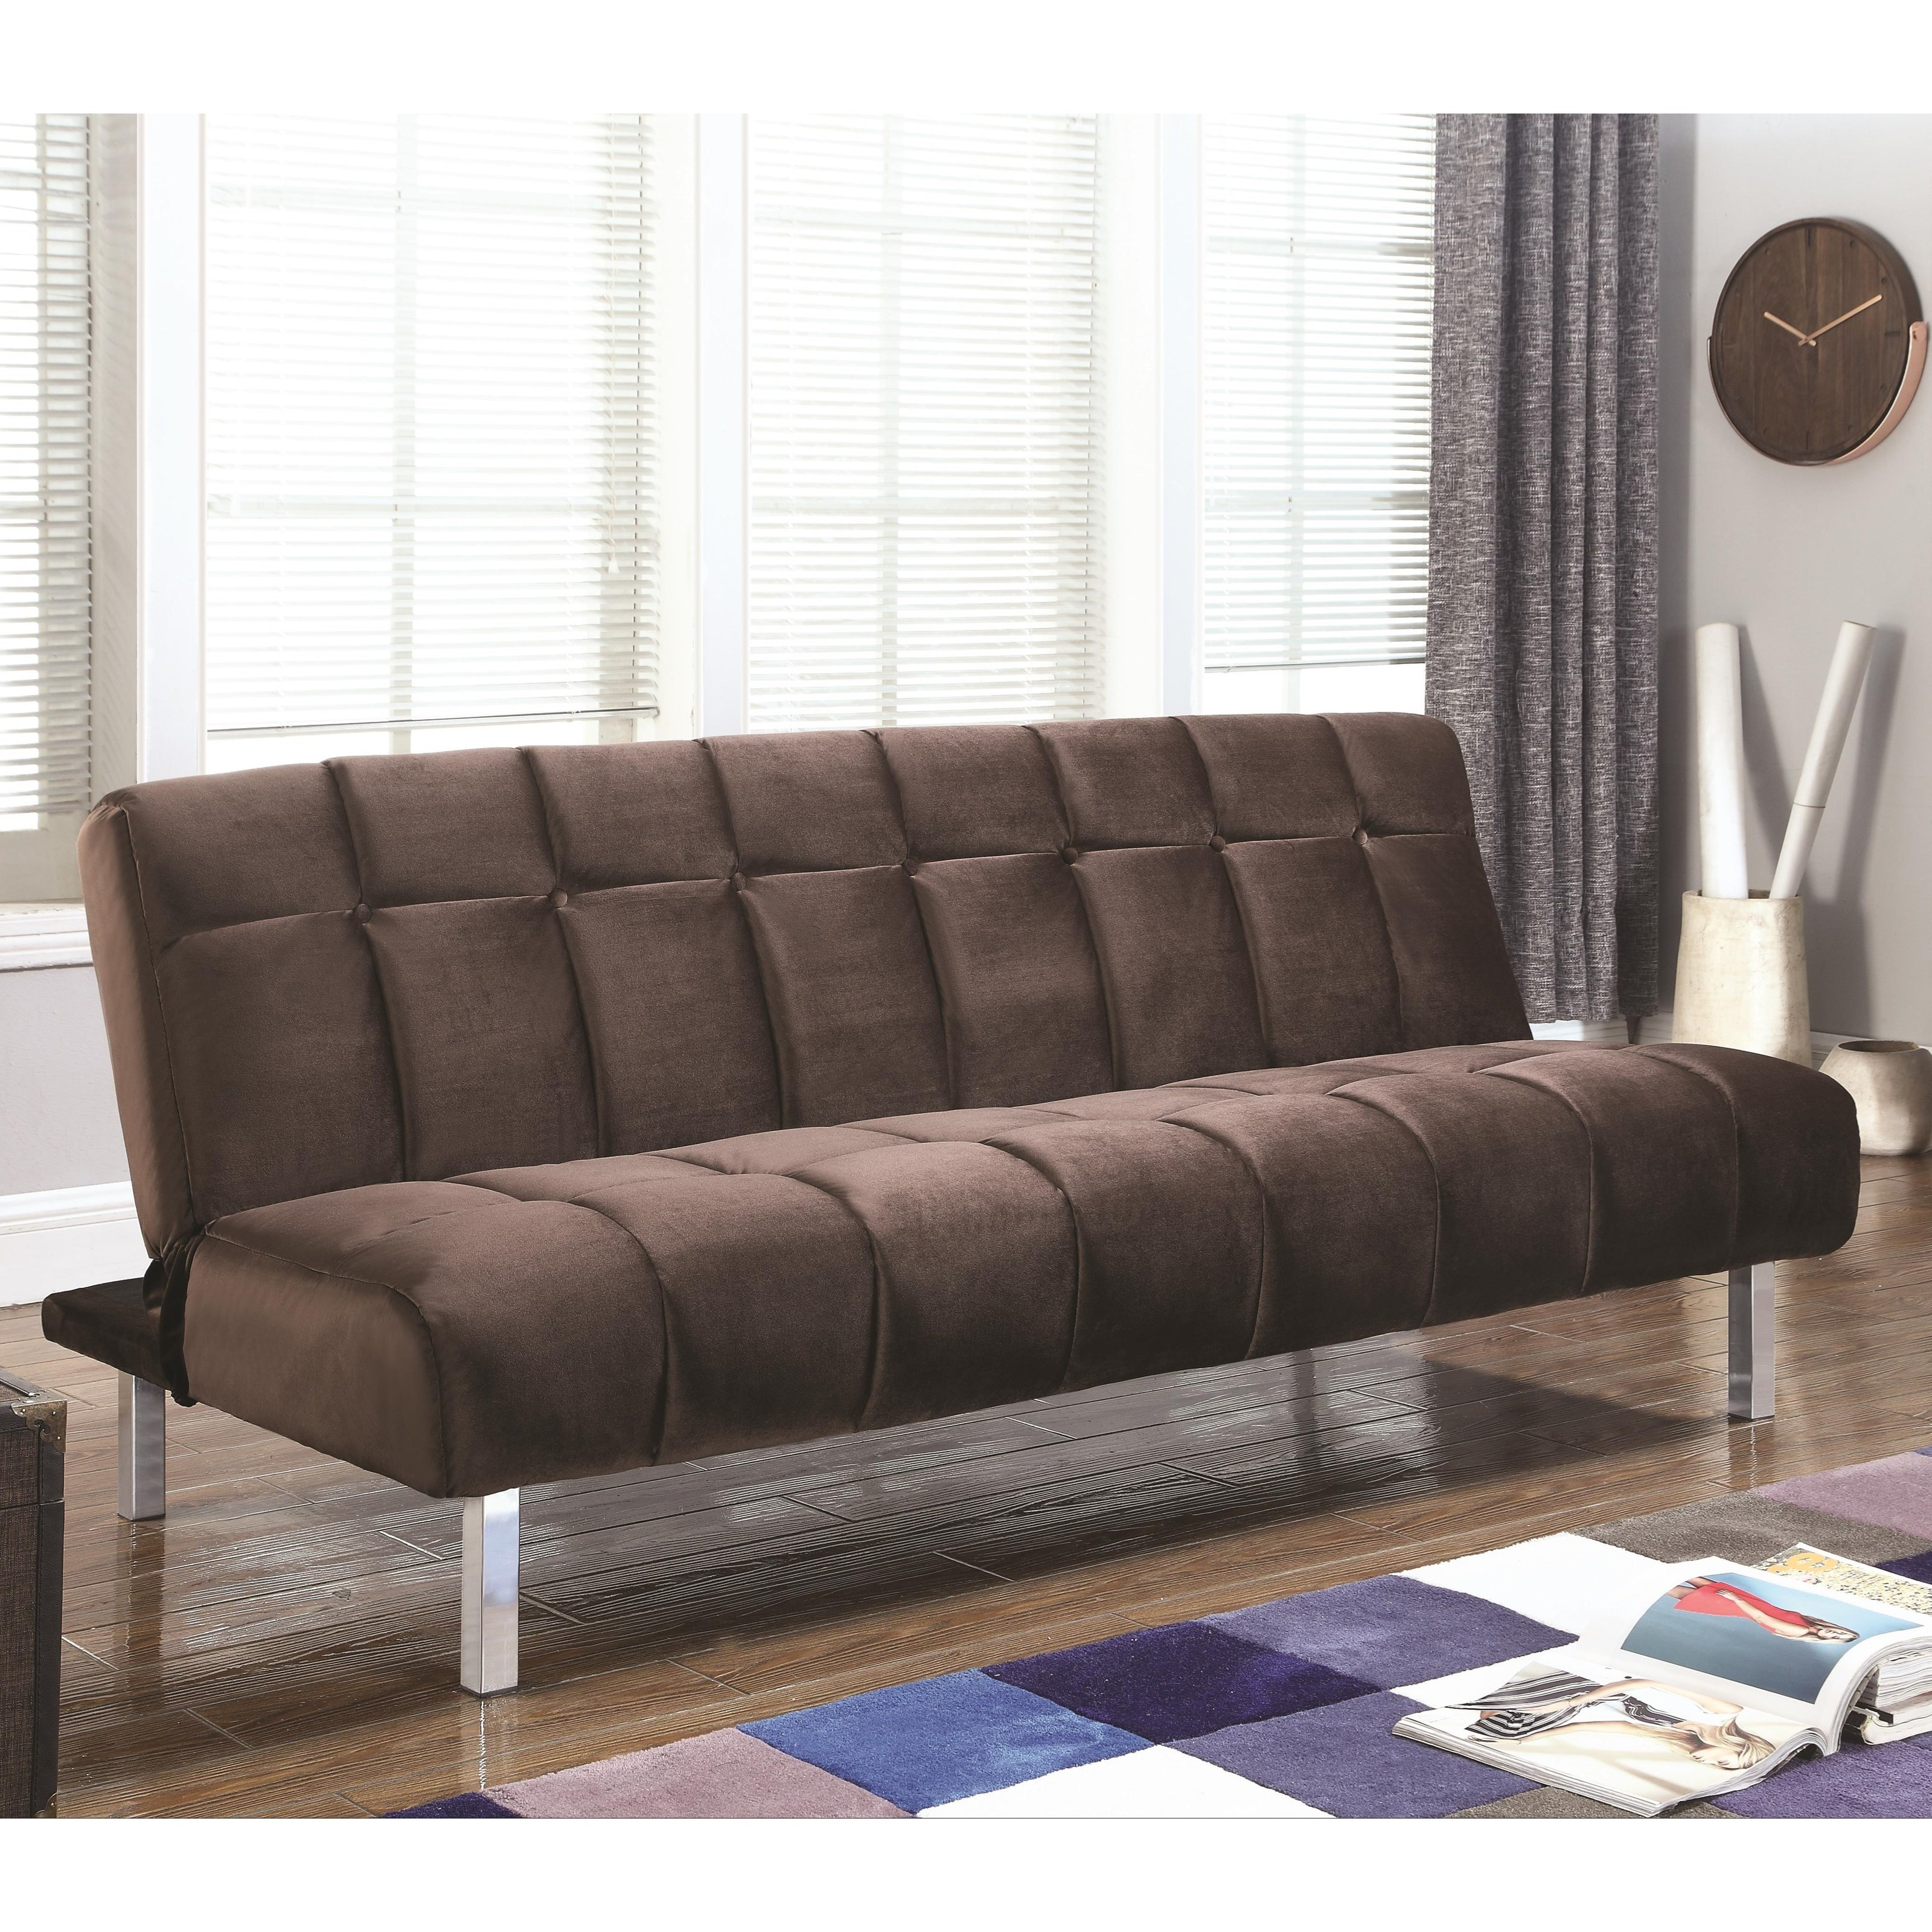 Coaster Sofa Beds And Futons Bed Item Number 360003